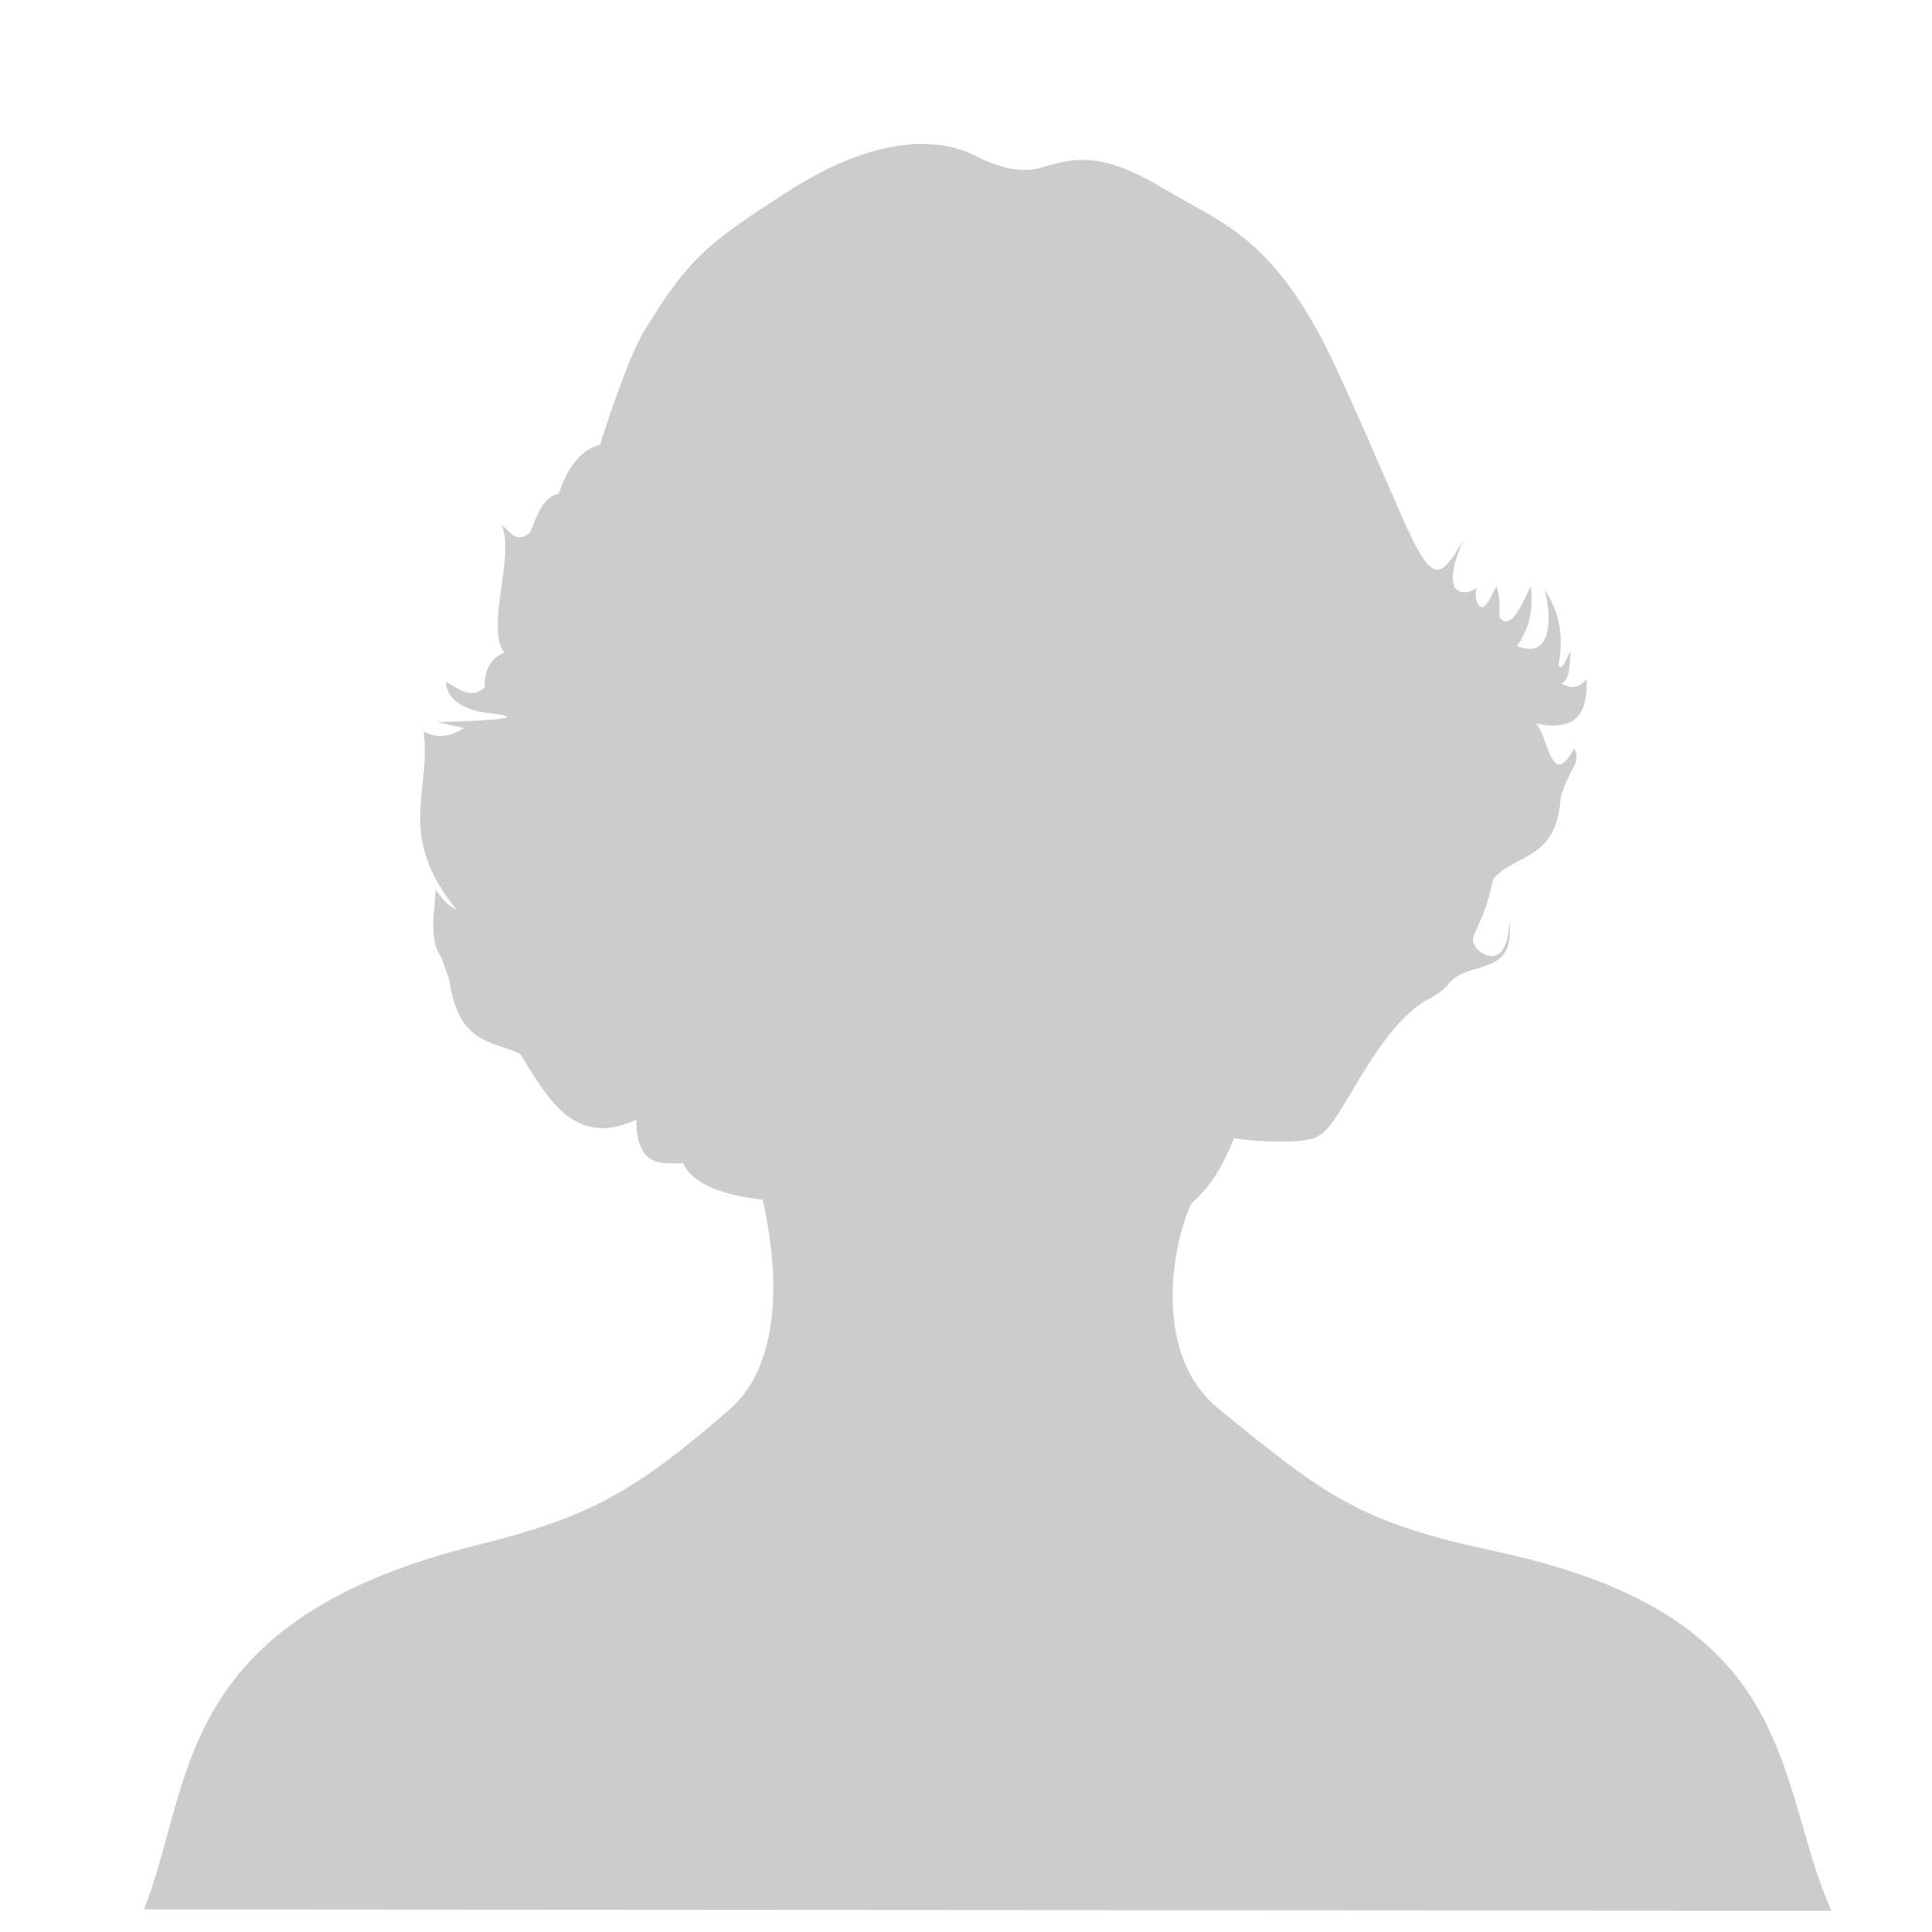 Blank Profile Picture Transparent & PNG Clipart Free Download - YAWD